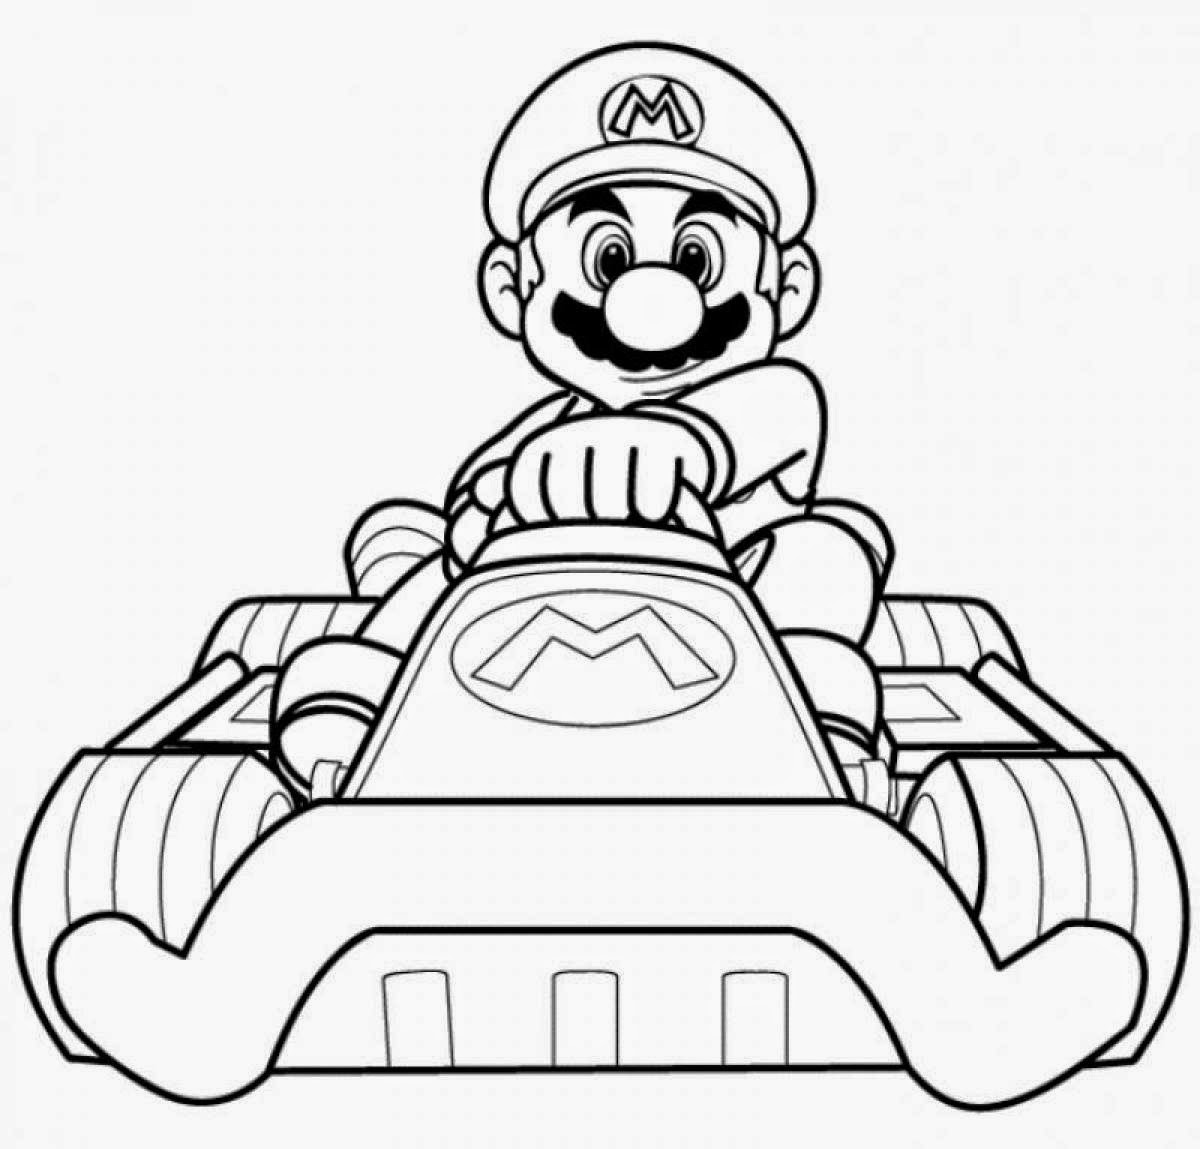 nintendo ds coloring pages - photo#28